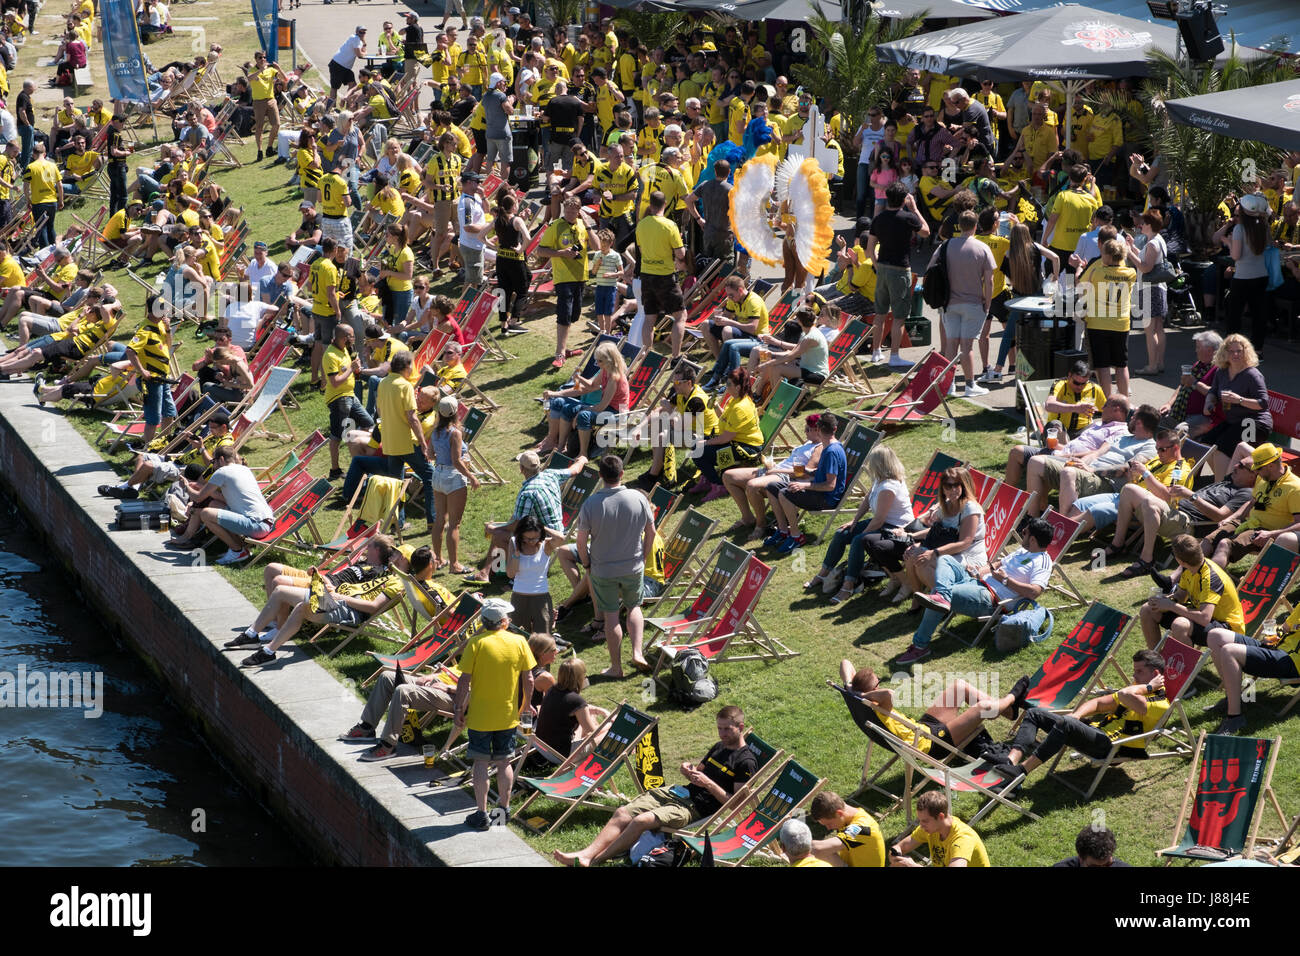 Berlin, Germany - may 27, 2017: BVB Fans / Borussia Dortmund Fans at riverside in Berlin on the day of the DFB-Pokal - Stock Image